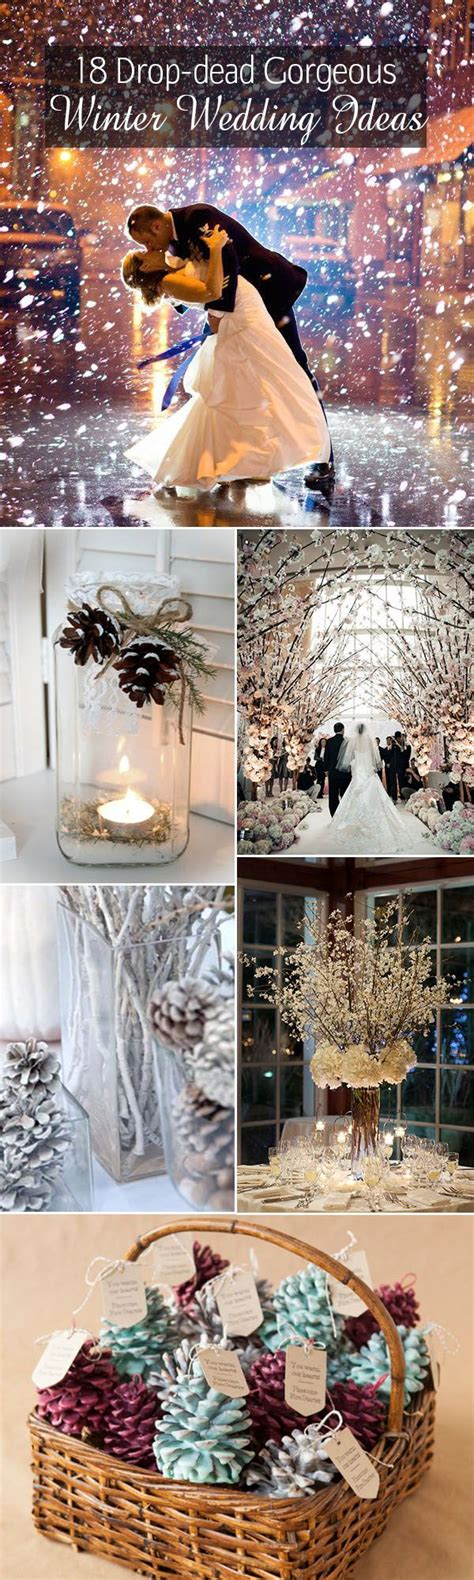 18 drop dead gorgeous winter wedding ideas my wedding